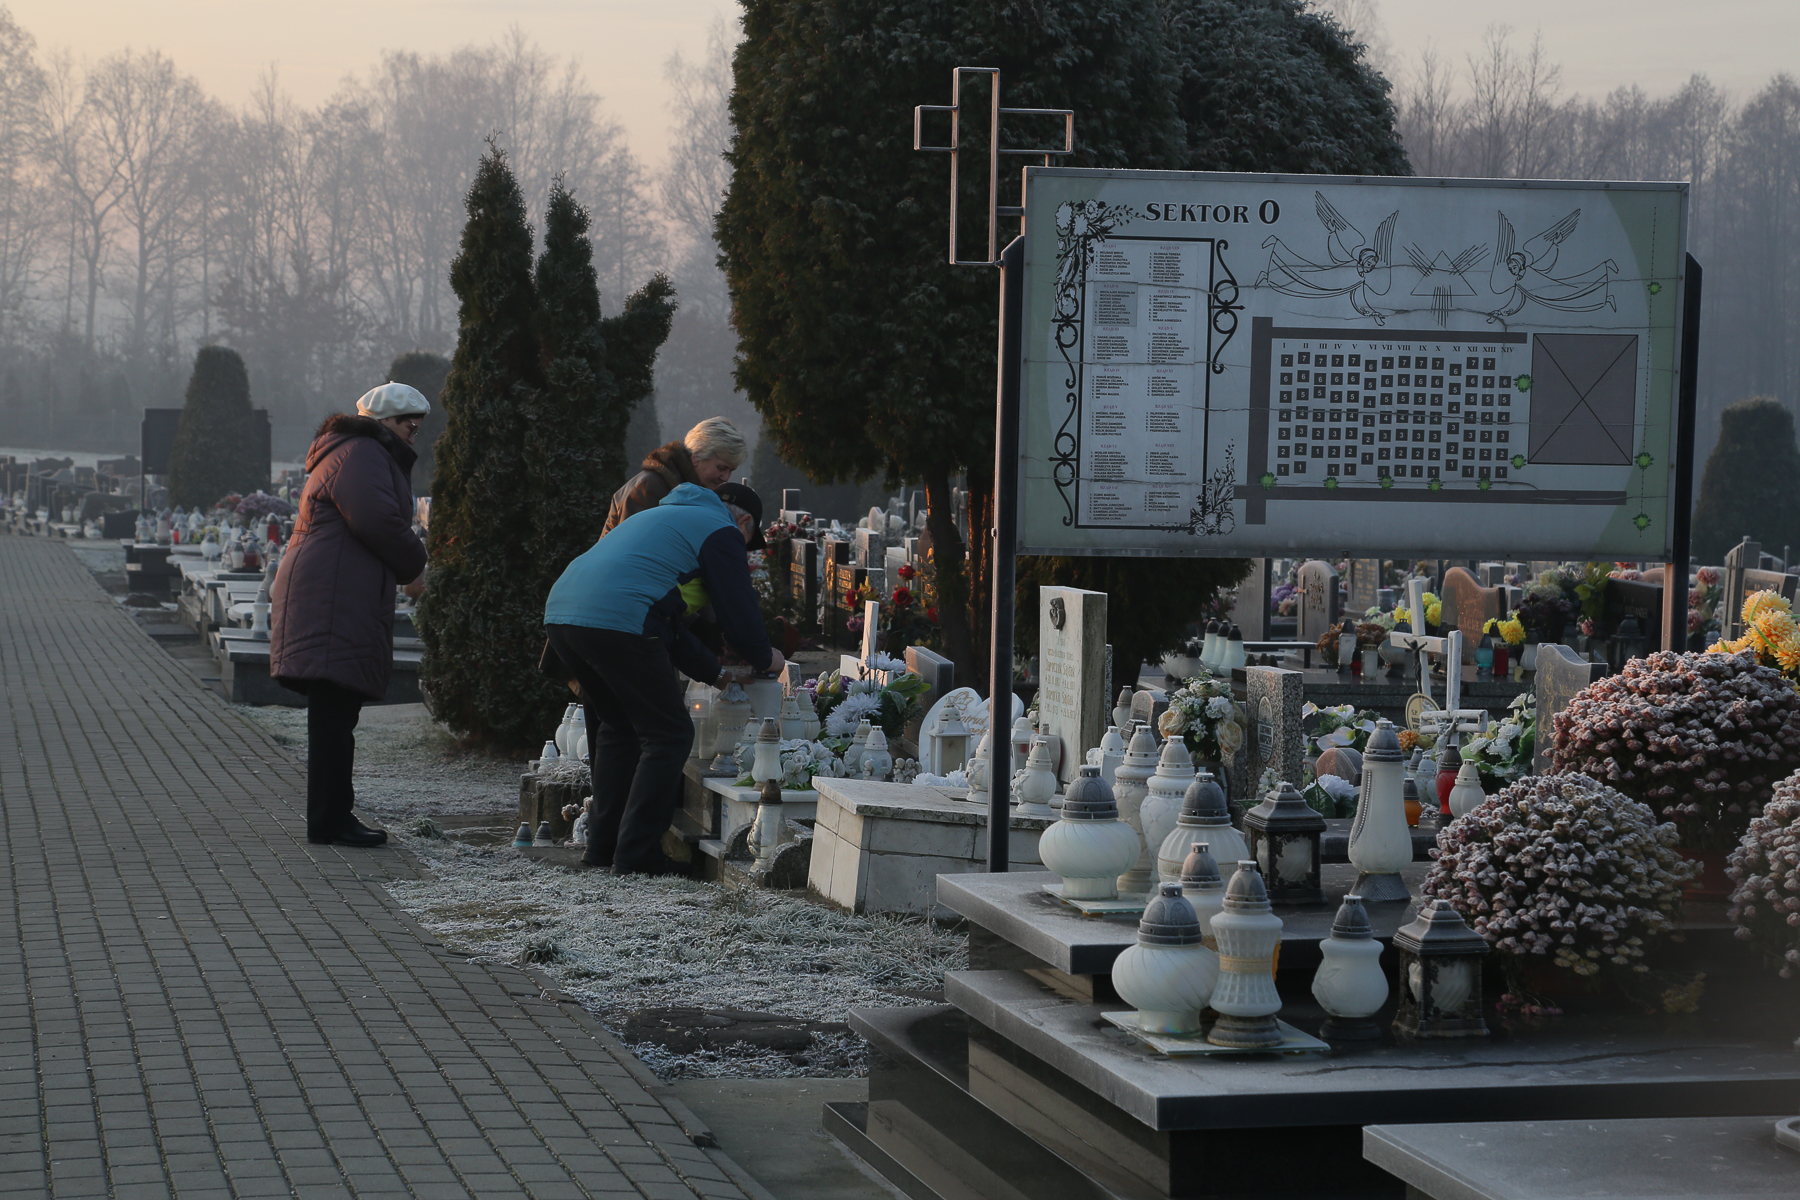 Gioia_Kuss_Portraits from Poland_-Children's Section of a Cemetery in Jawiszowice4.jpg